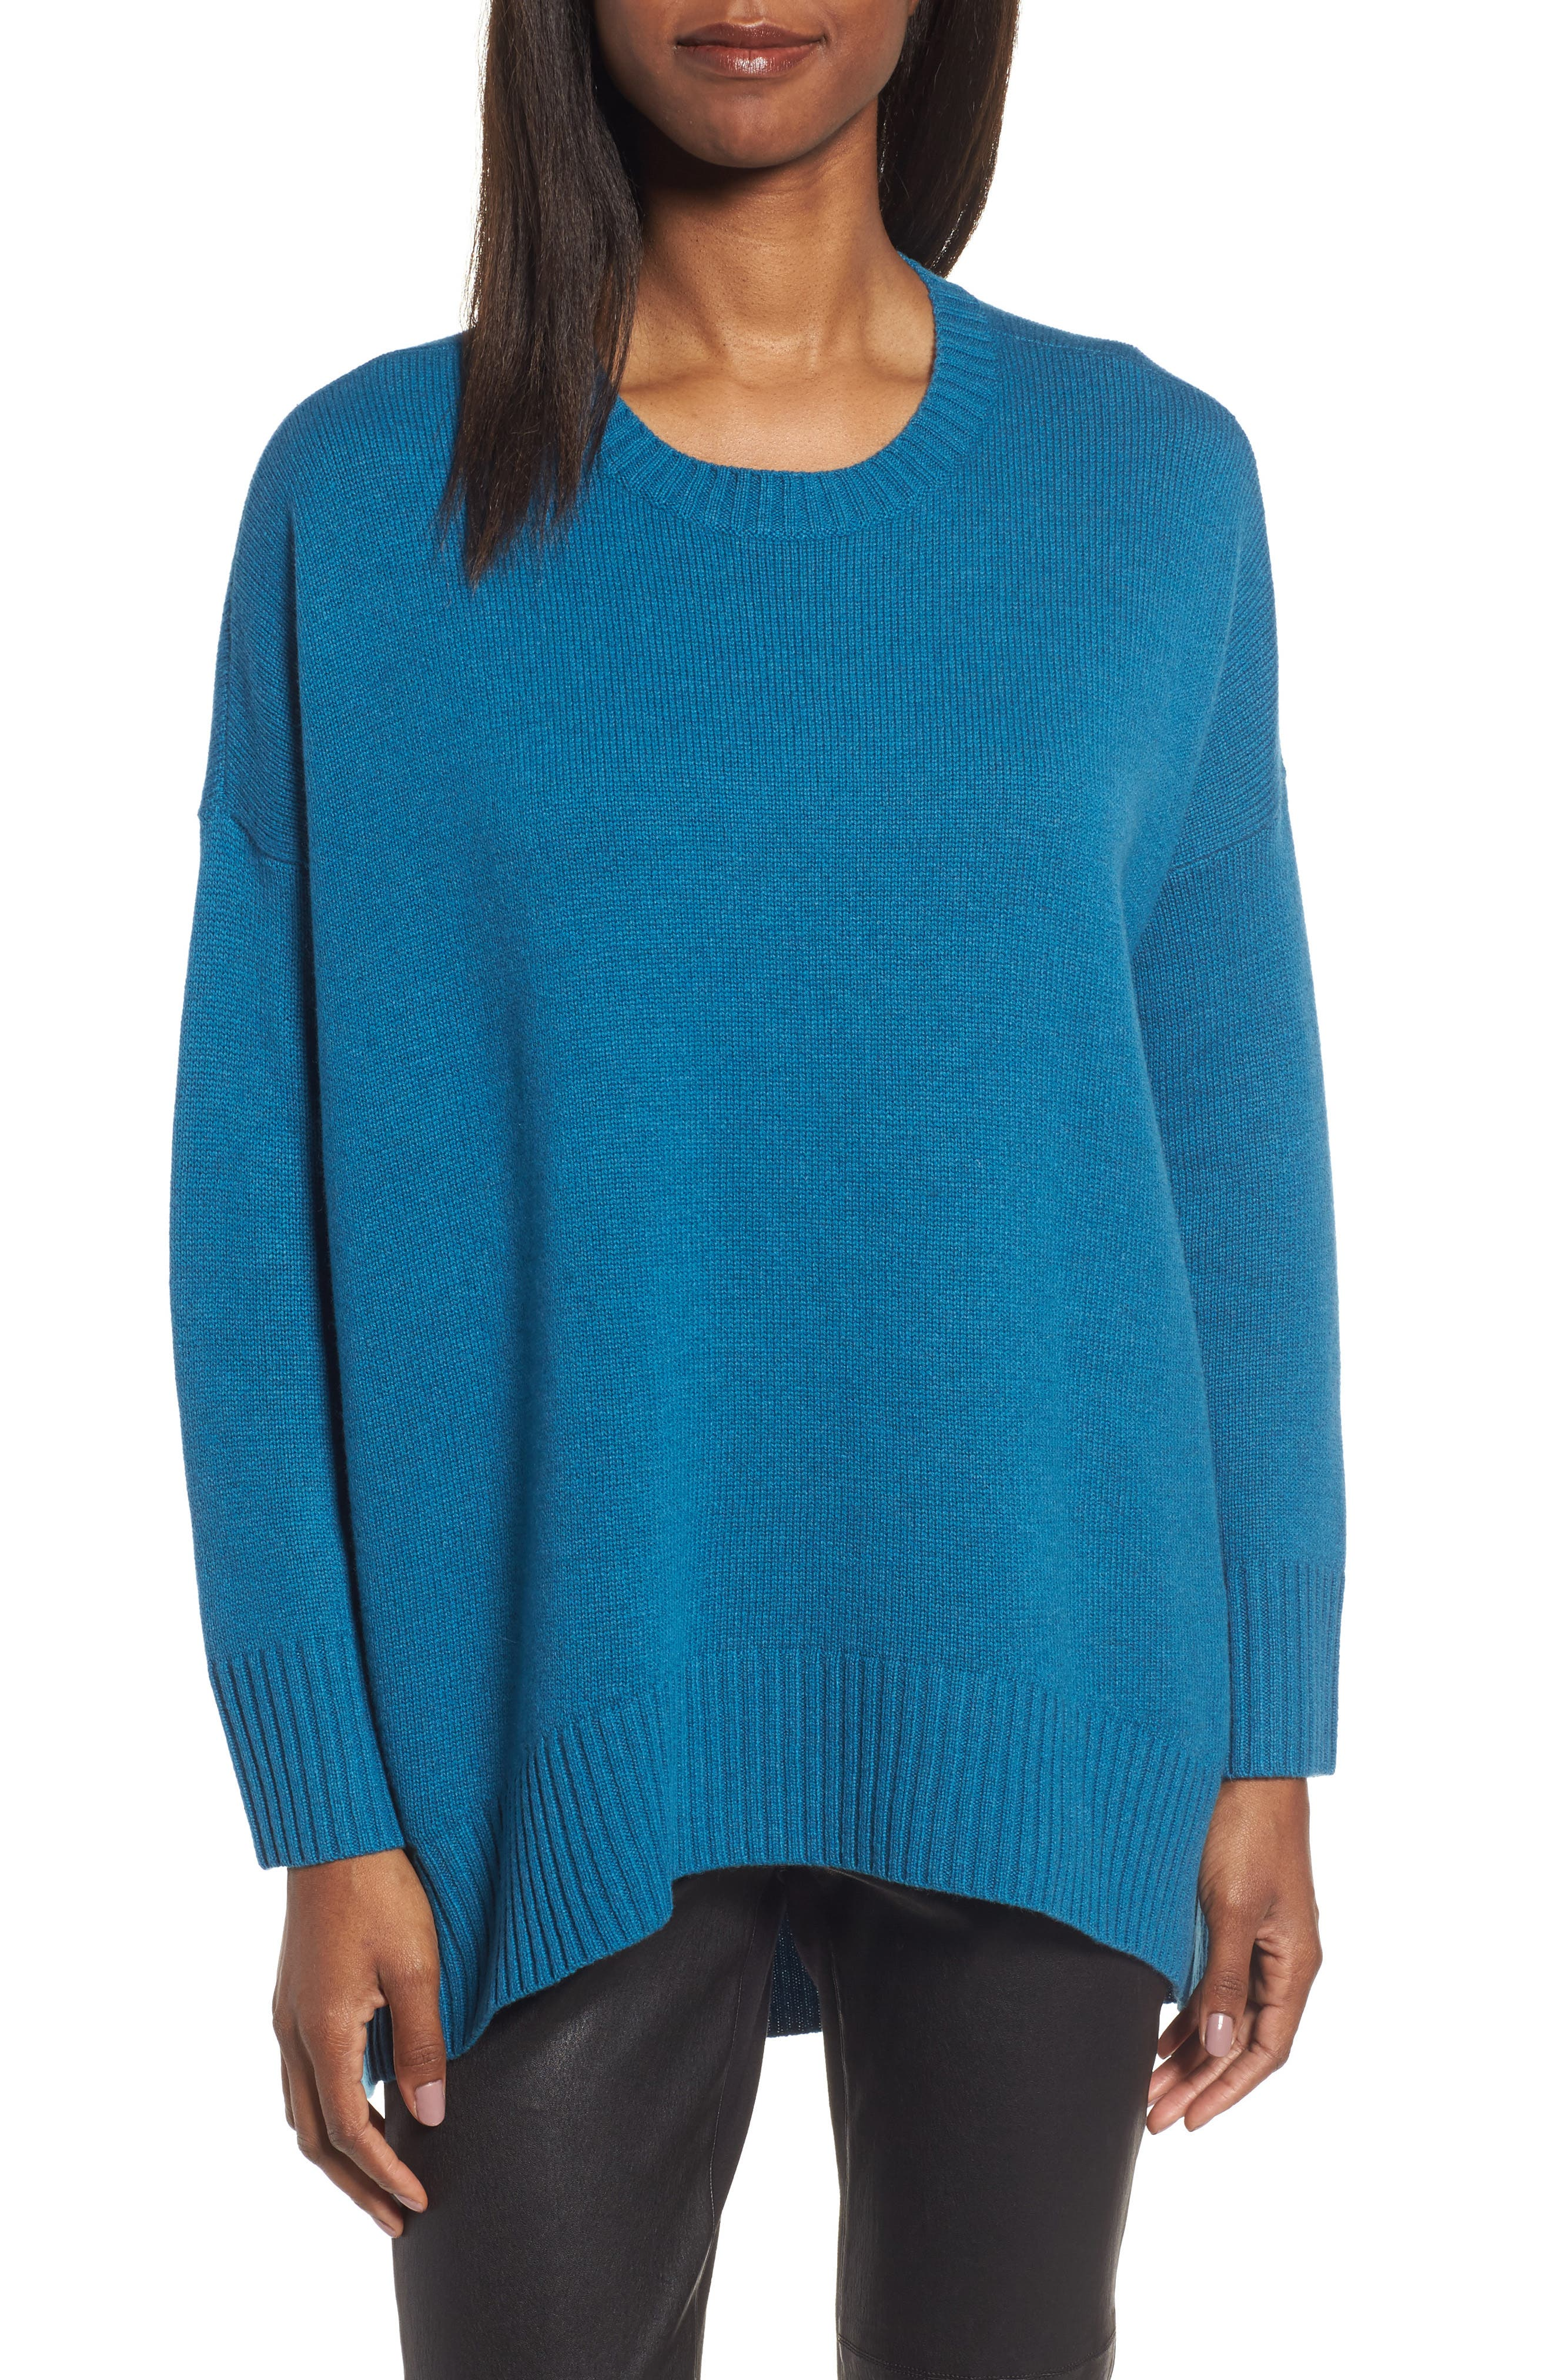 Alternate Image 1 Selected - Eileen Fisher Cashmere & Wool Blend Oversize Sweater